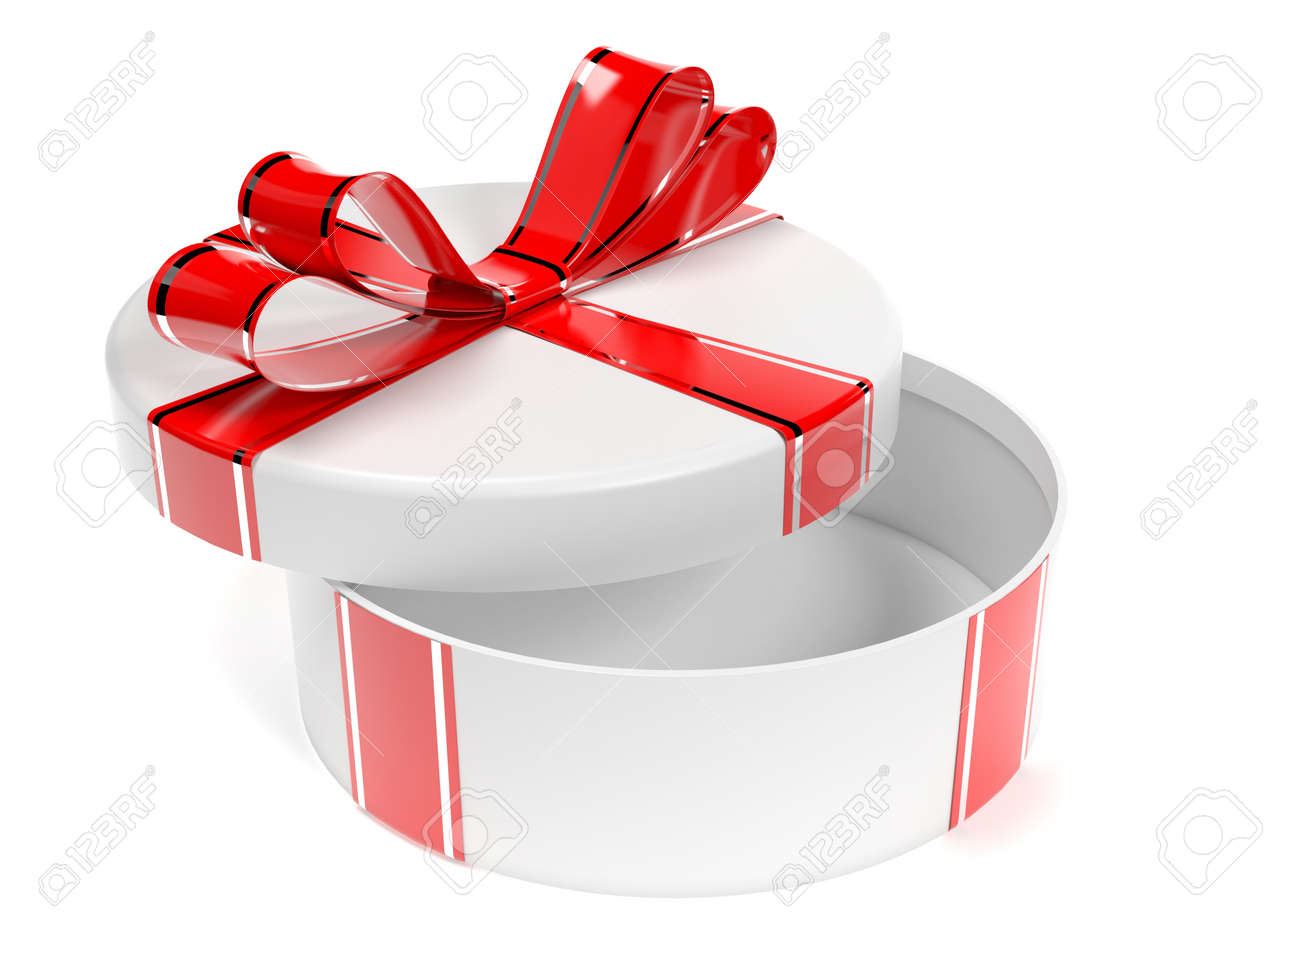 Round gift box. 3d rendering illustration isolated on white background - 150185924